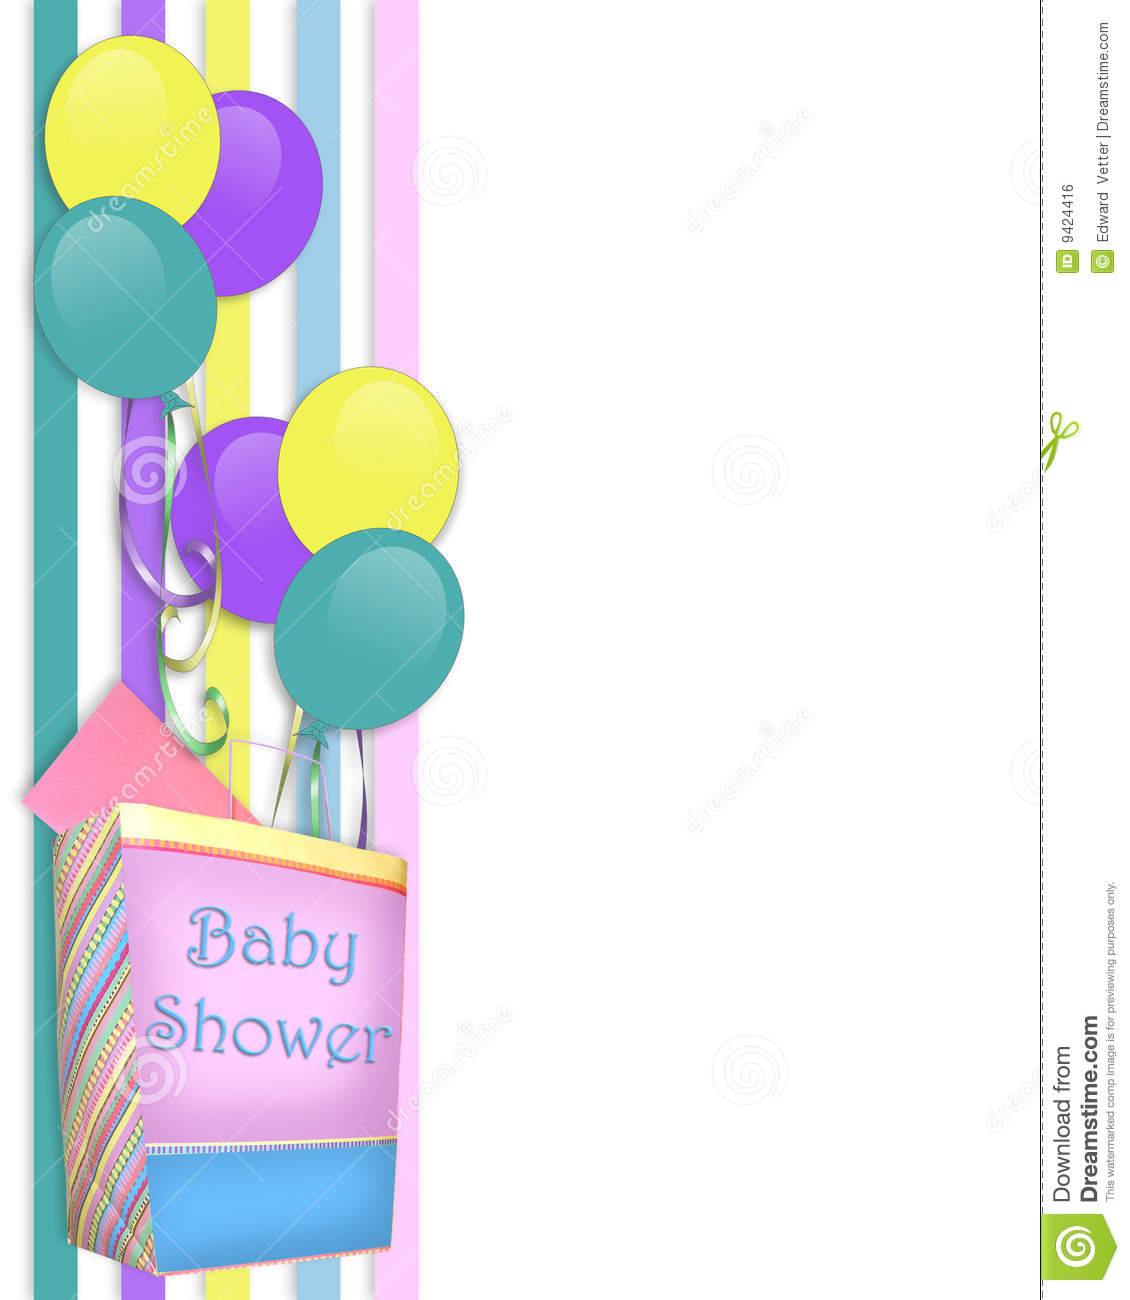 1130x1300 Free Clipart For Baby Shower Invitation And Borders